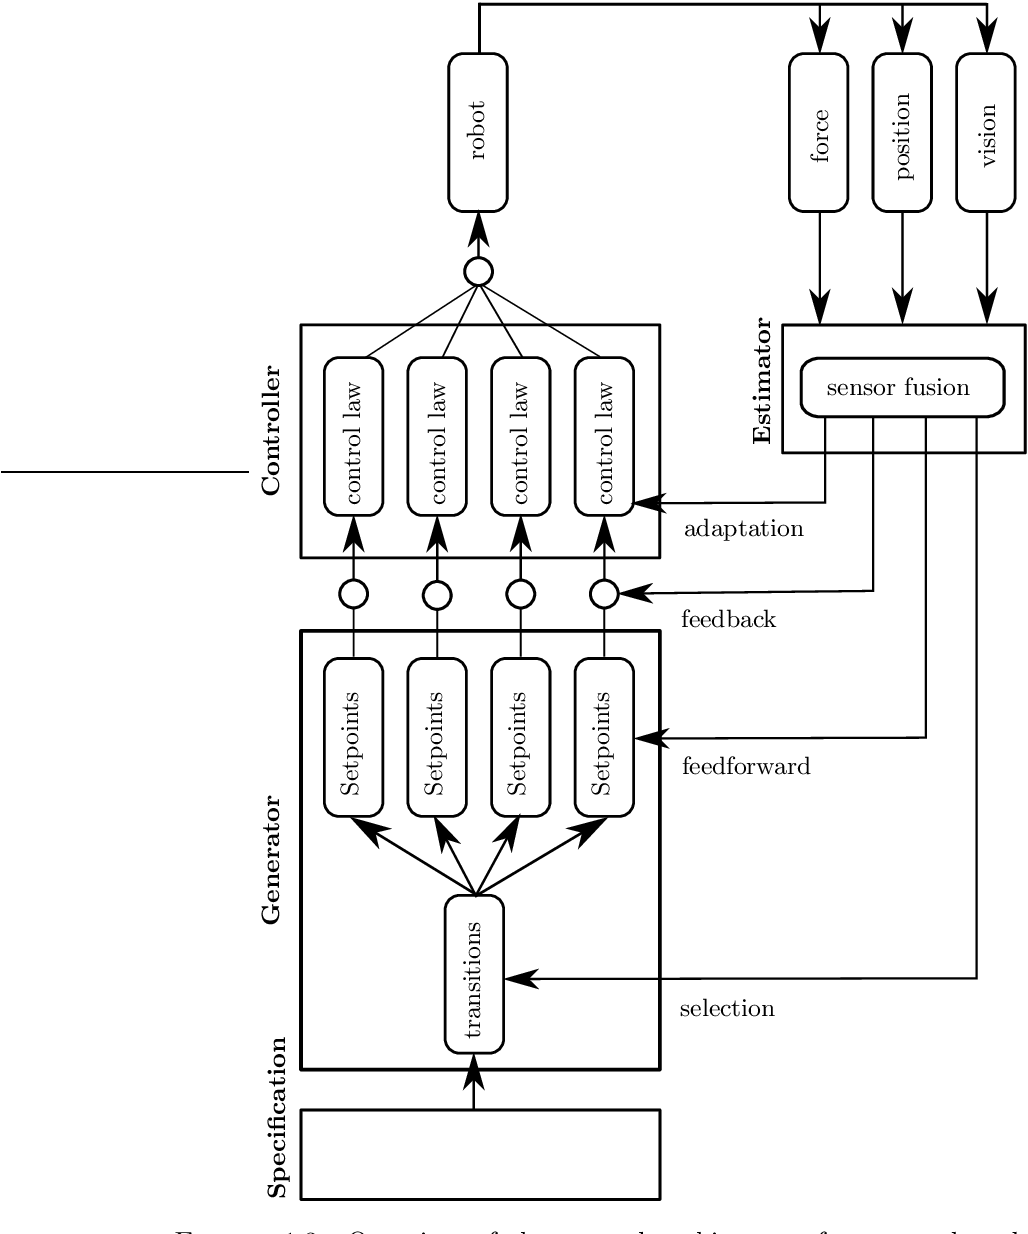 Figure 1.3: Overview of the control architecture for sensor based active compliant motion tasks.